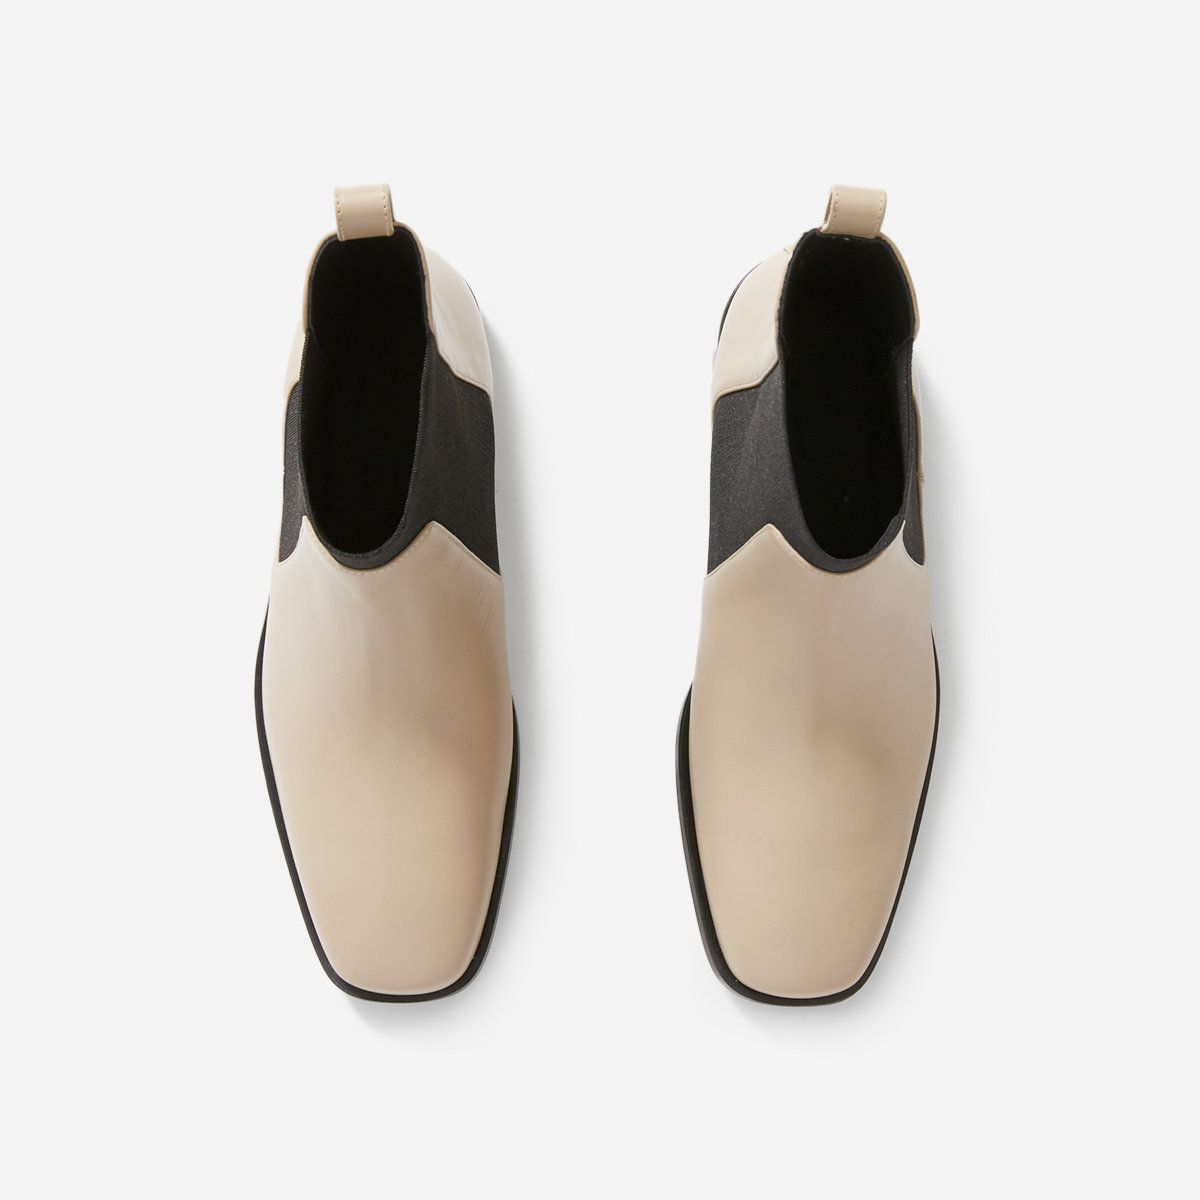 d692d20bb3e Everlane - The Square Toe Chelsea Boot | Just Ethical Goods ...